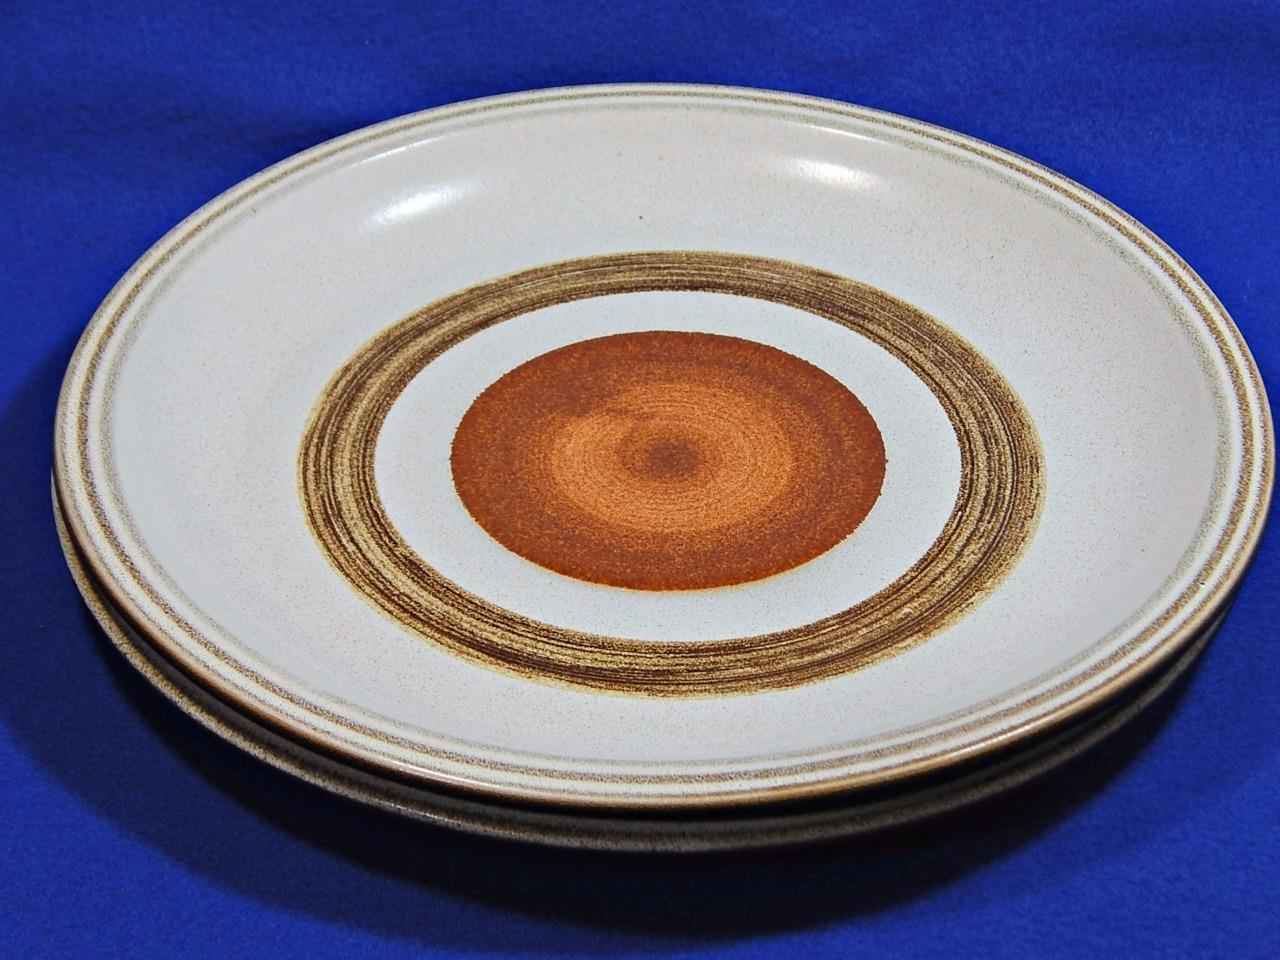 Palomar by Denby LOT of 2 DINNER PLATES and 50 similar items